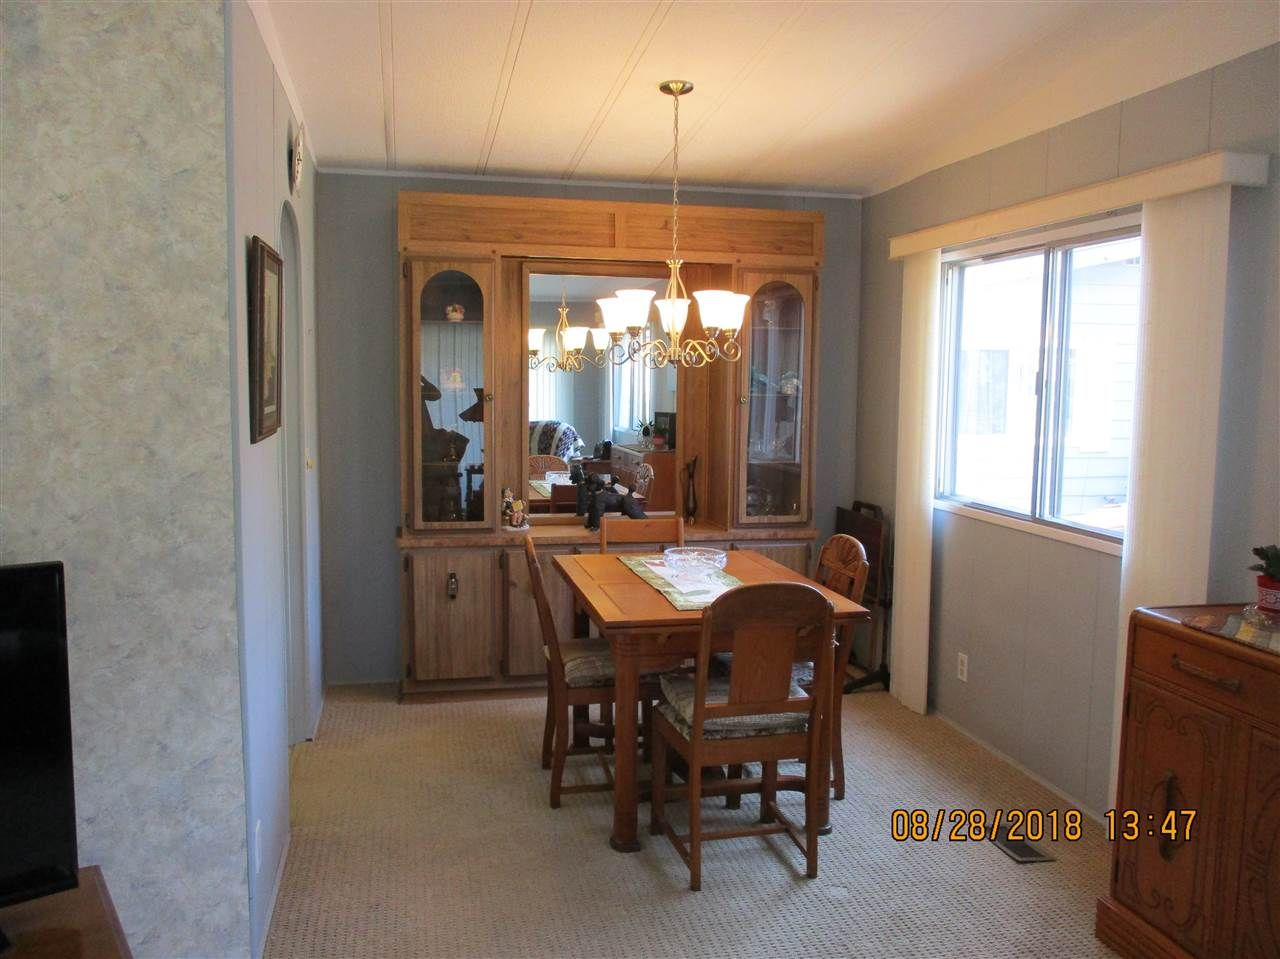 """Photo 5: Photos: 57 2305 200 Street in Langley: Brookswood Langley Manufactured Home for sale in """"CEDAR LANE"""" : MLS®# R2357125"""